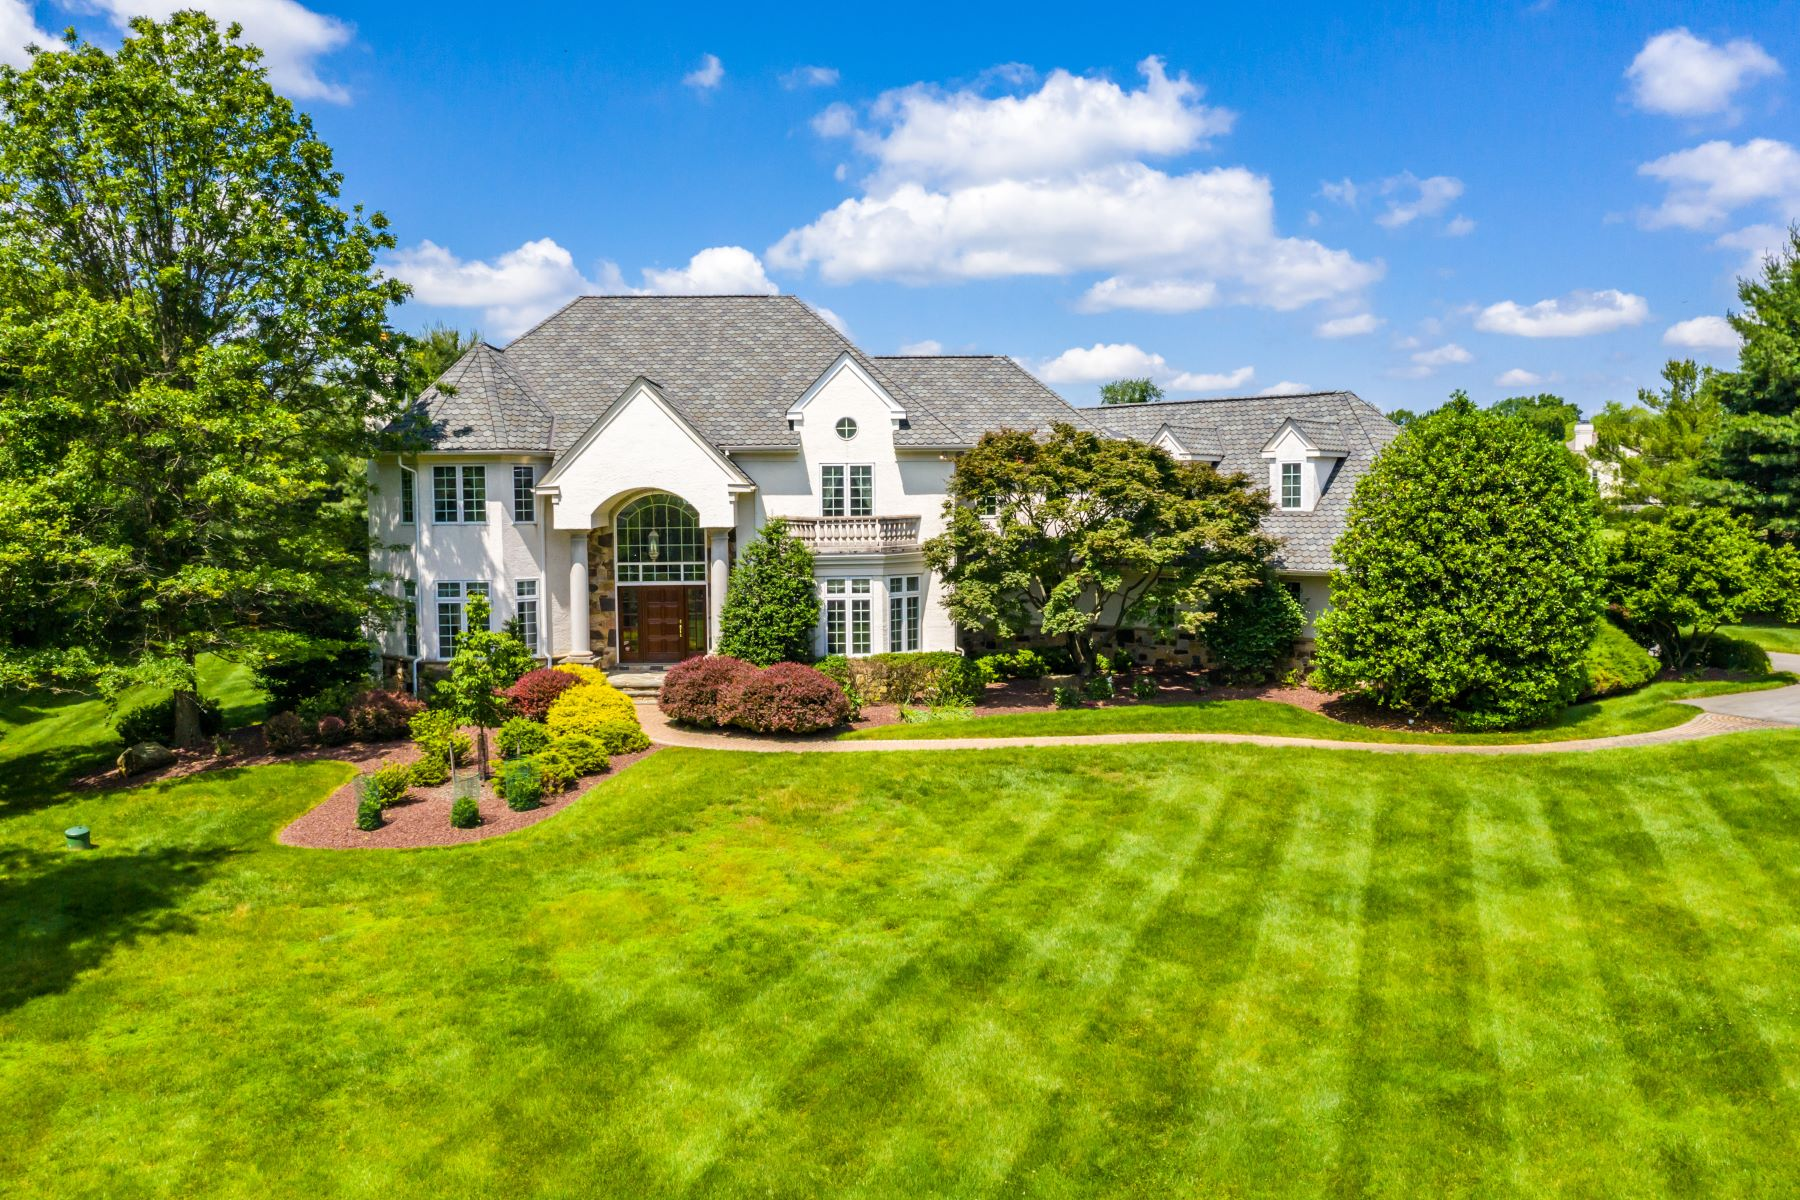 Single Family Homes for Sale at 140 Harvey Rd., West Chester, PA 19382 140 Harvey Rd. West Chester, Pennsylvania 19382 United States